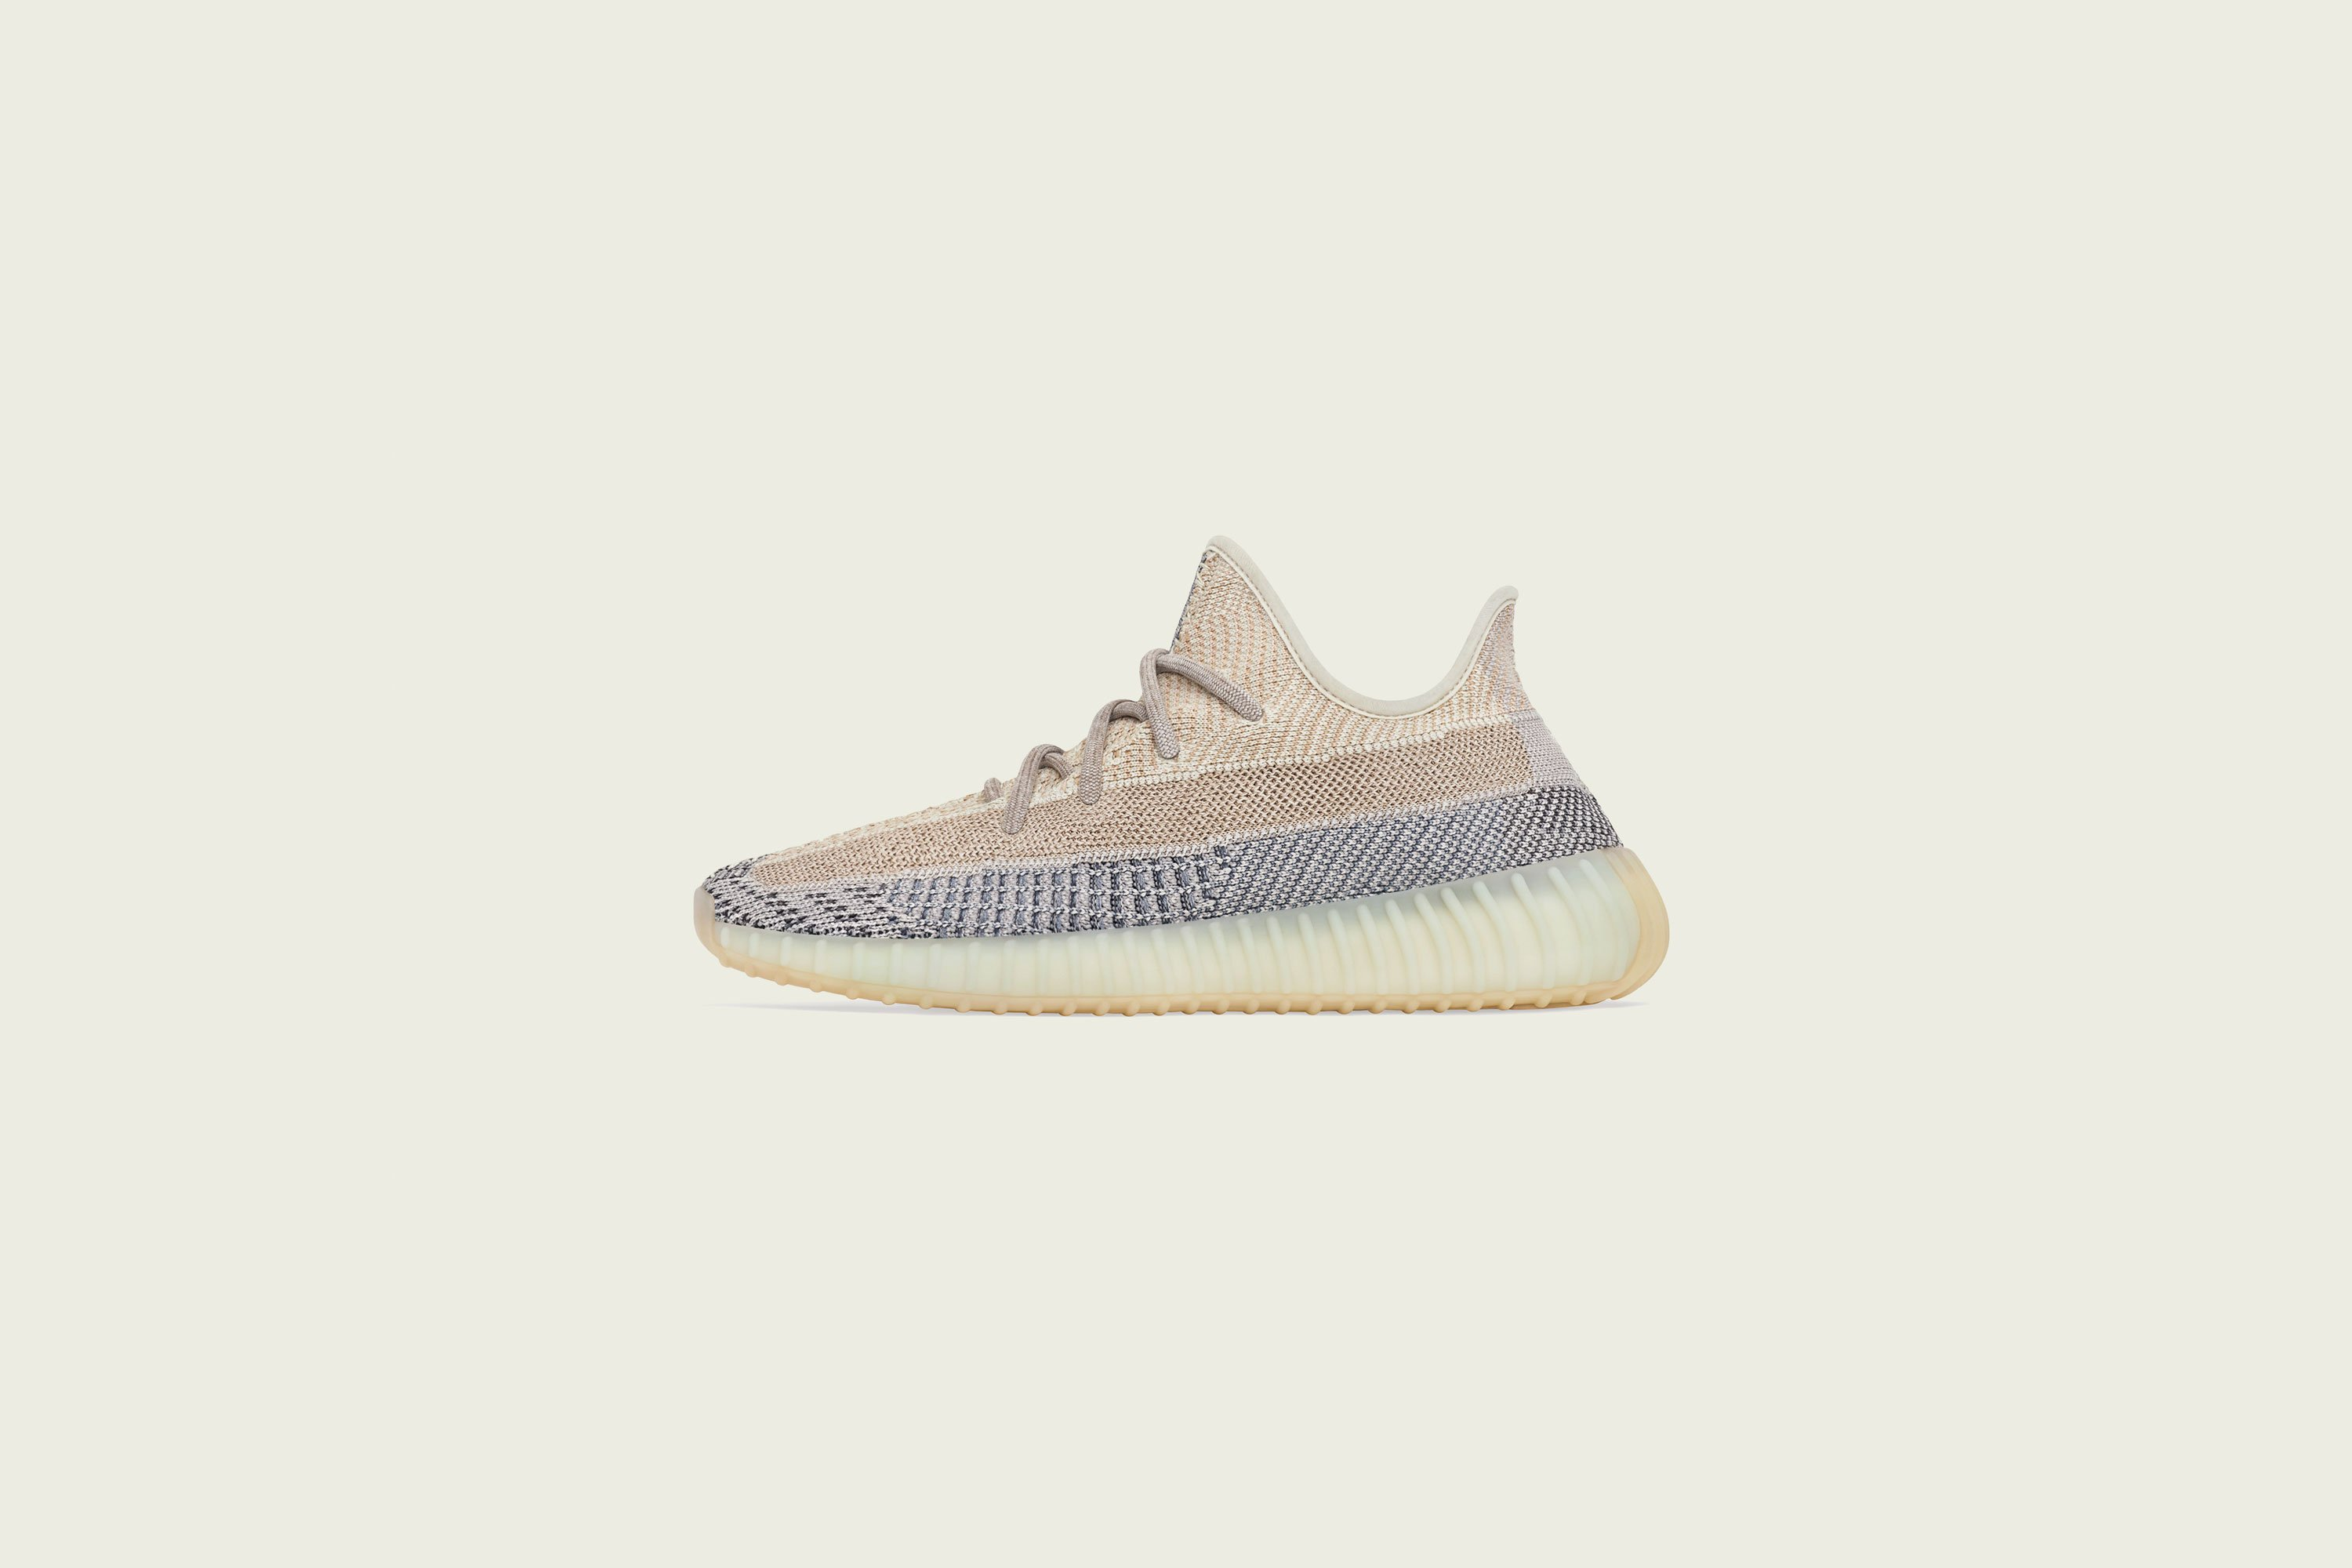 Up There Launches - adidas Yeezy Boost 350v2 - Ash Pearl